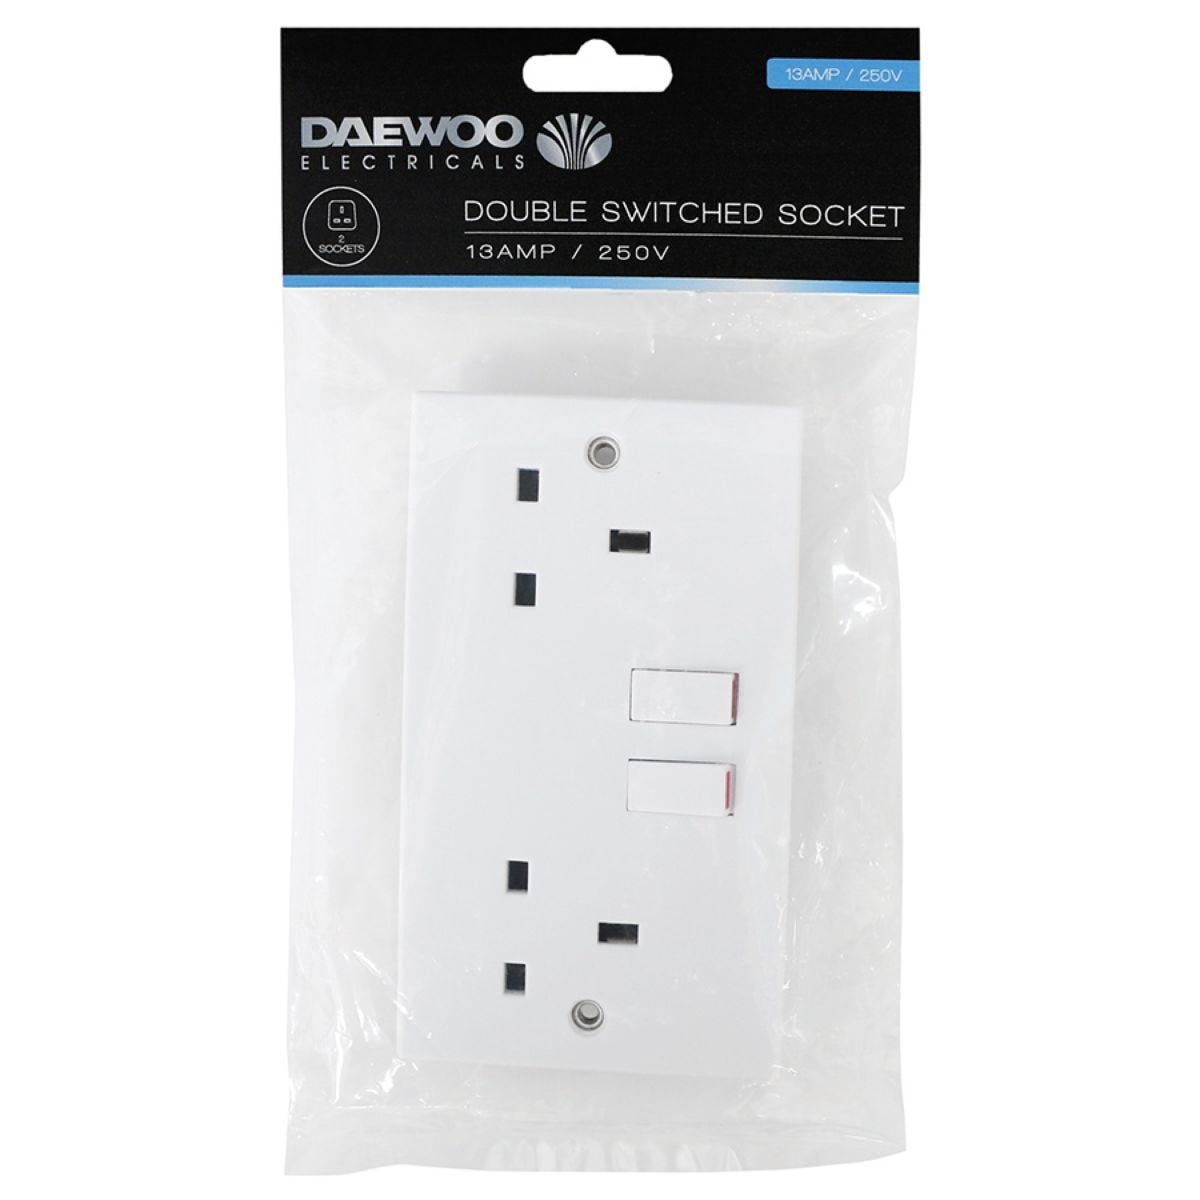 Daewoo Double-Switched Socket - 13 Amp